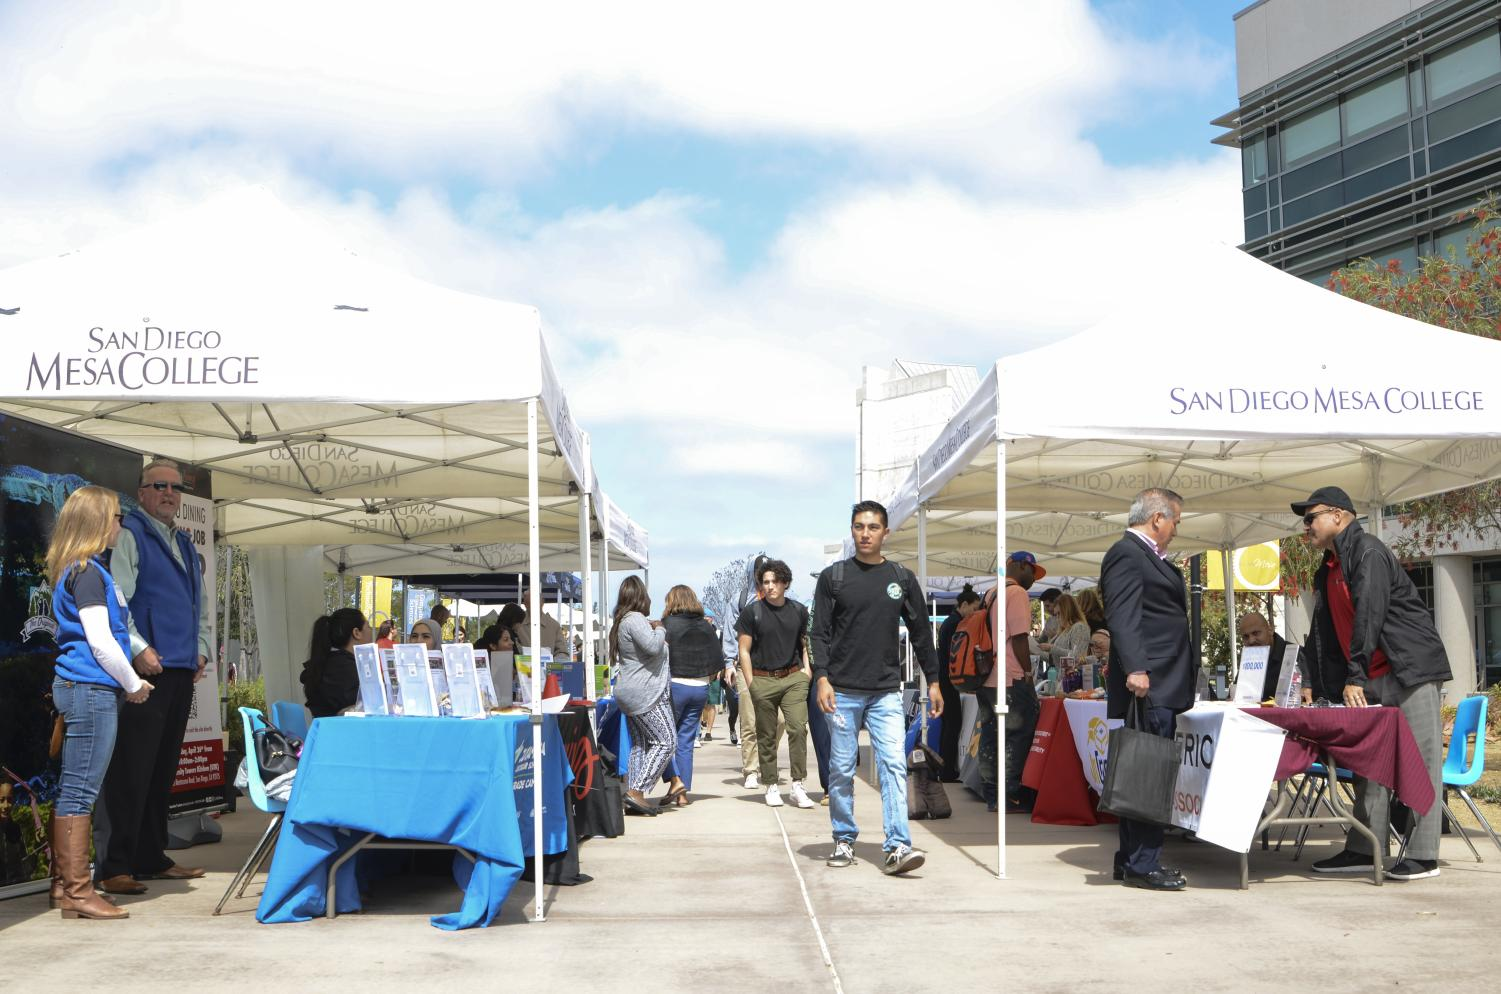 Career Fair underway at San Diego Mesa College. Photo credit: Office of Communications